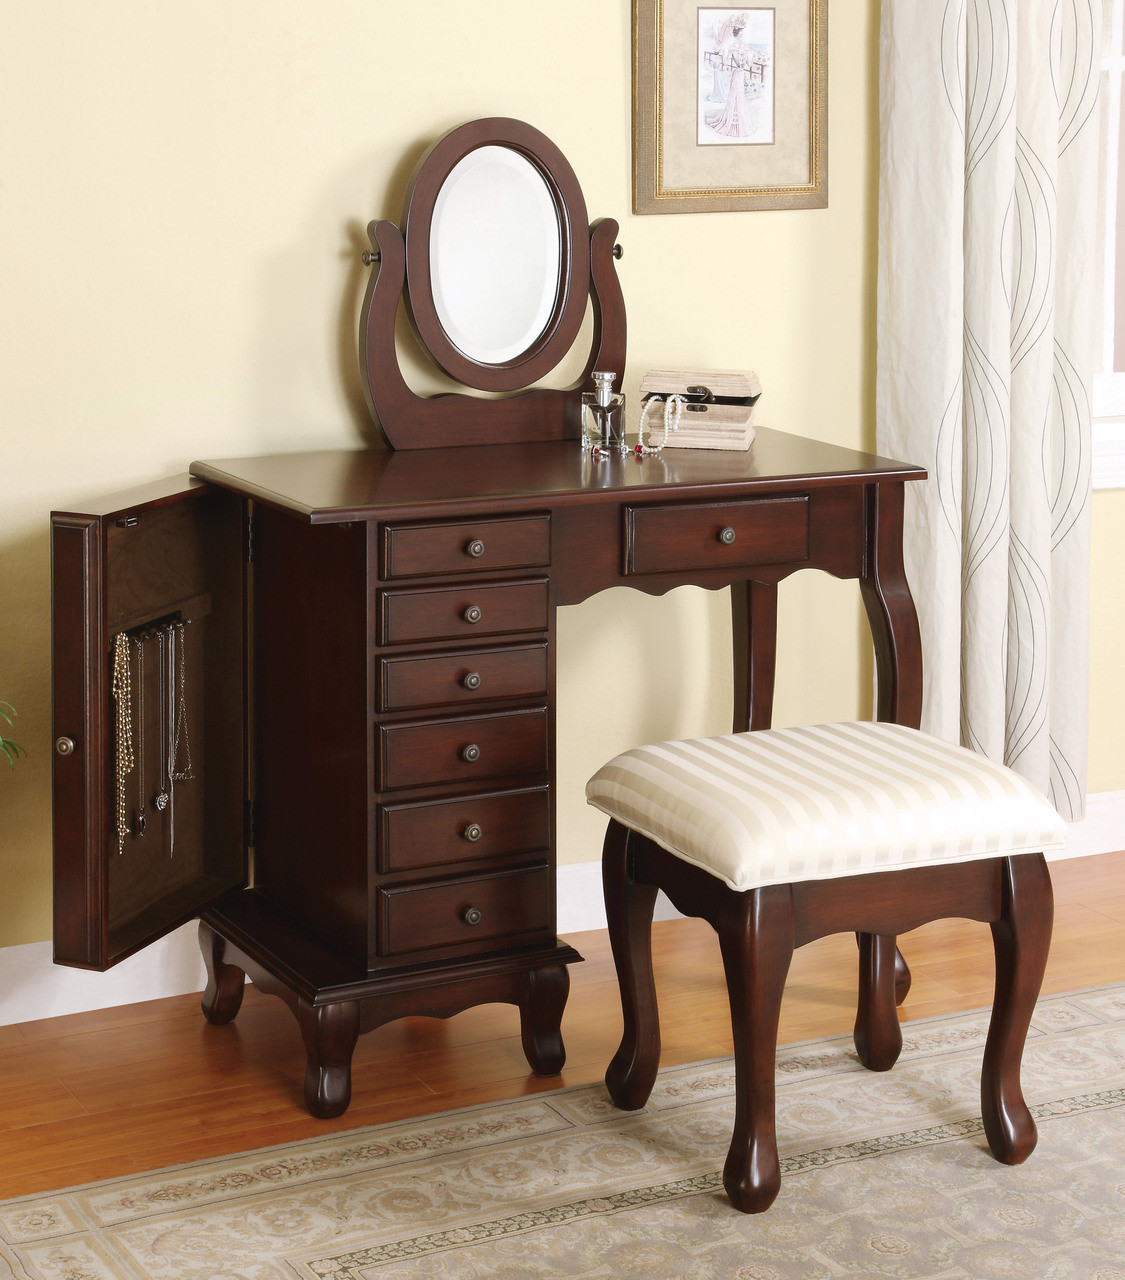 Fayetteville rich brown vanity table cabinet drawers for Brown vanity table